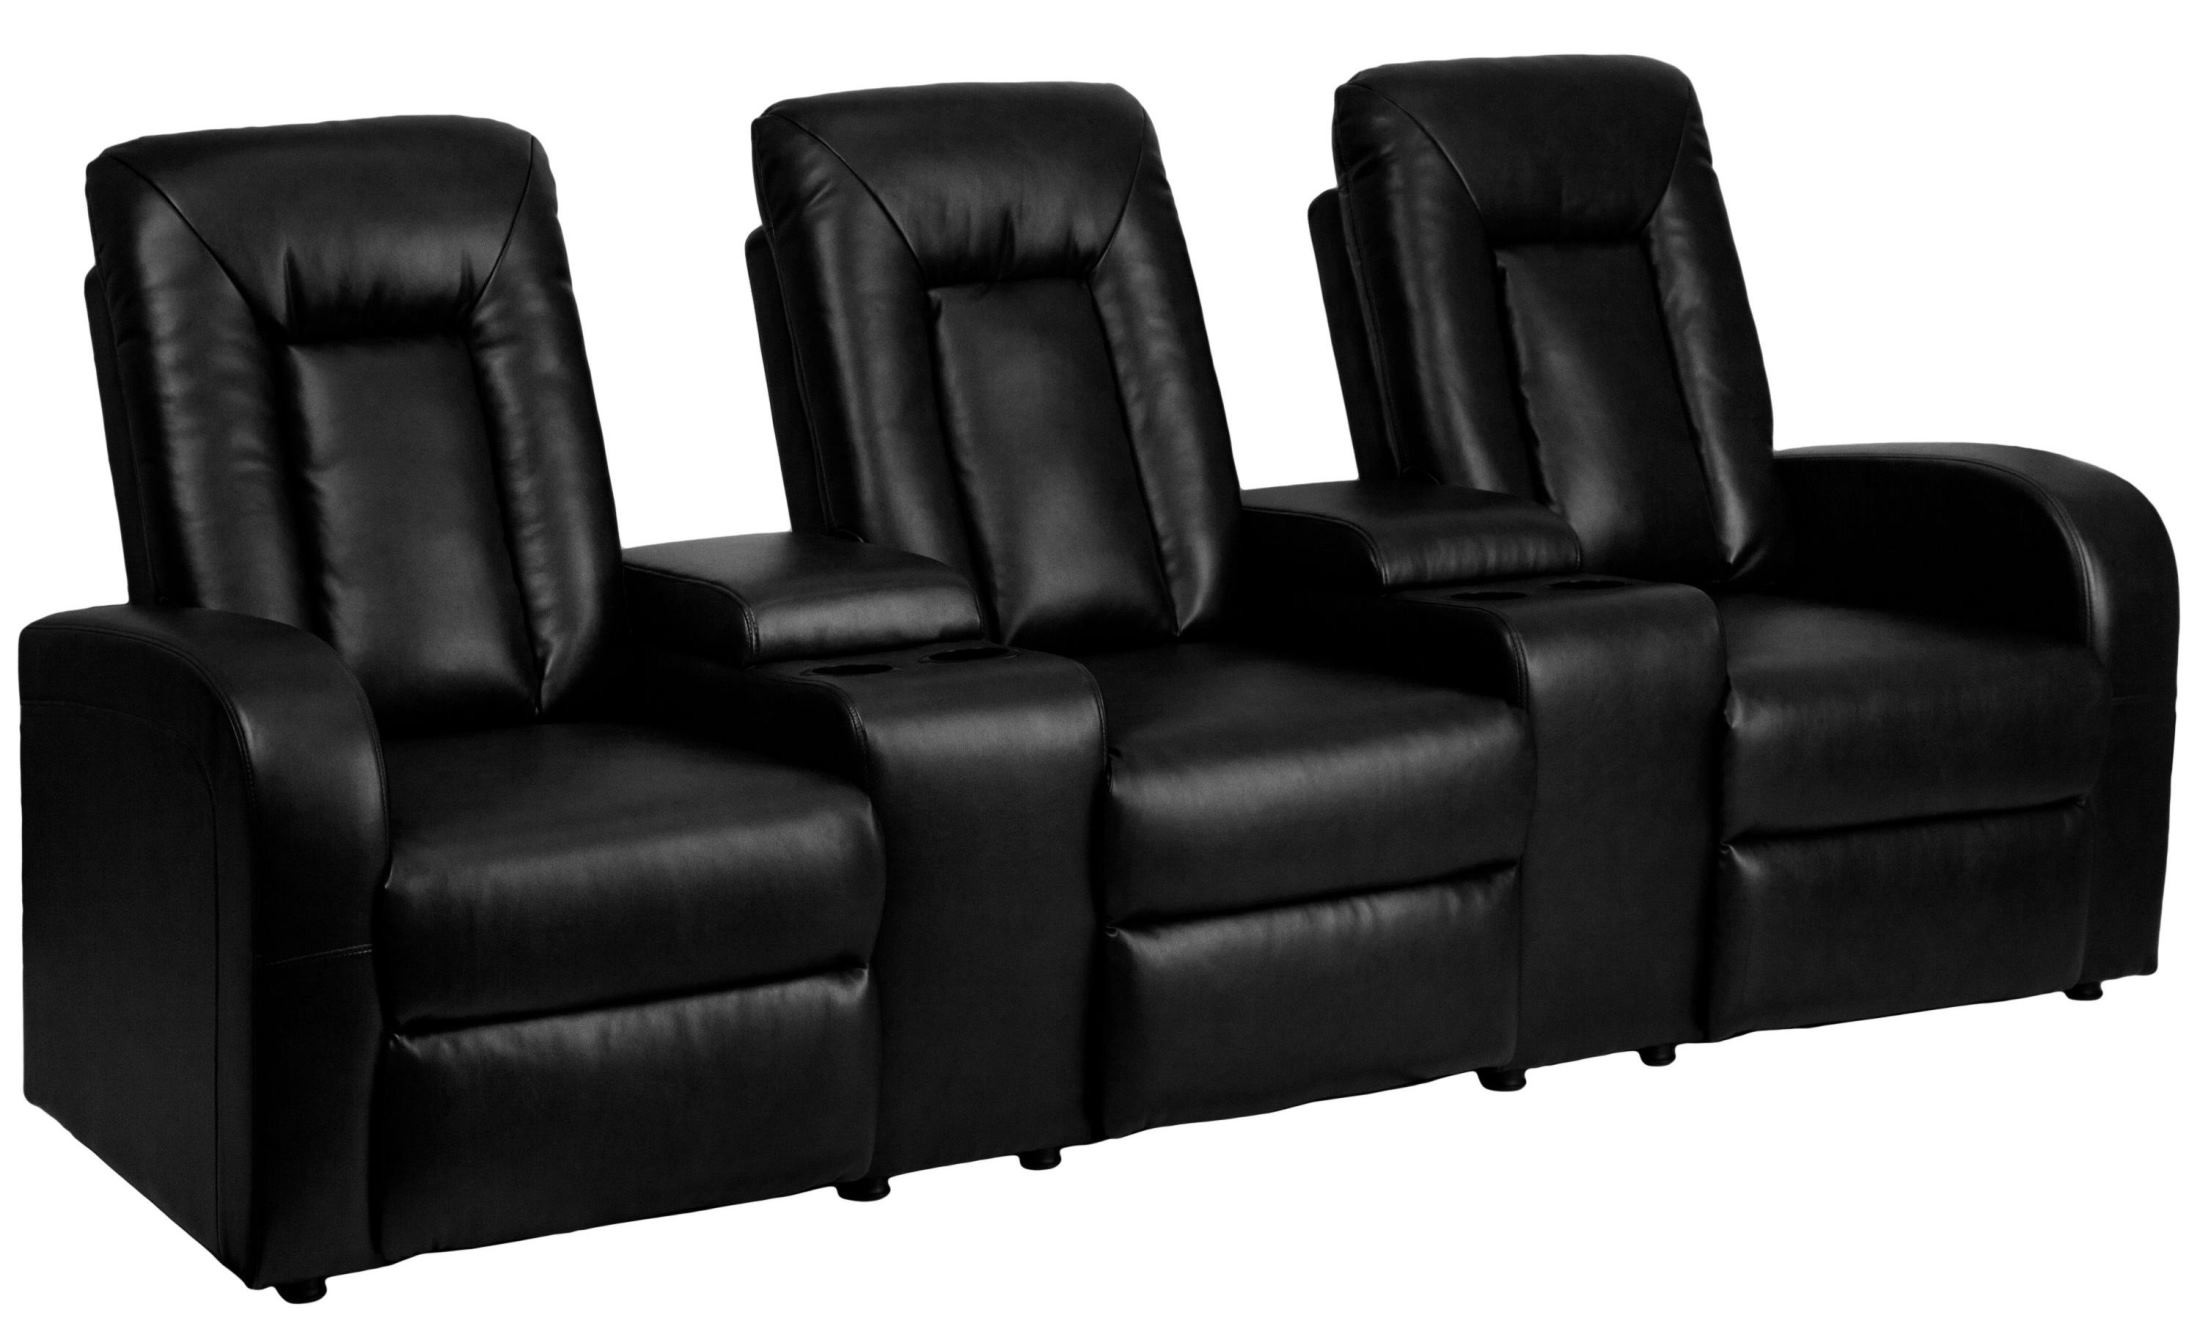 2 seat theater chairs navy parsons chair black leather 3 home console recliner from